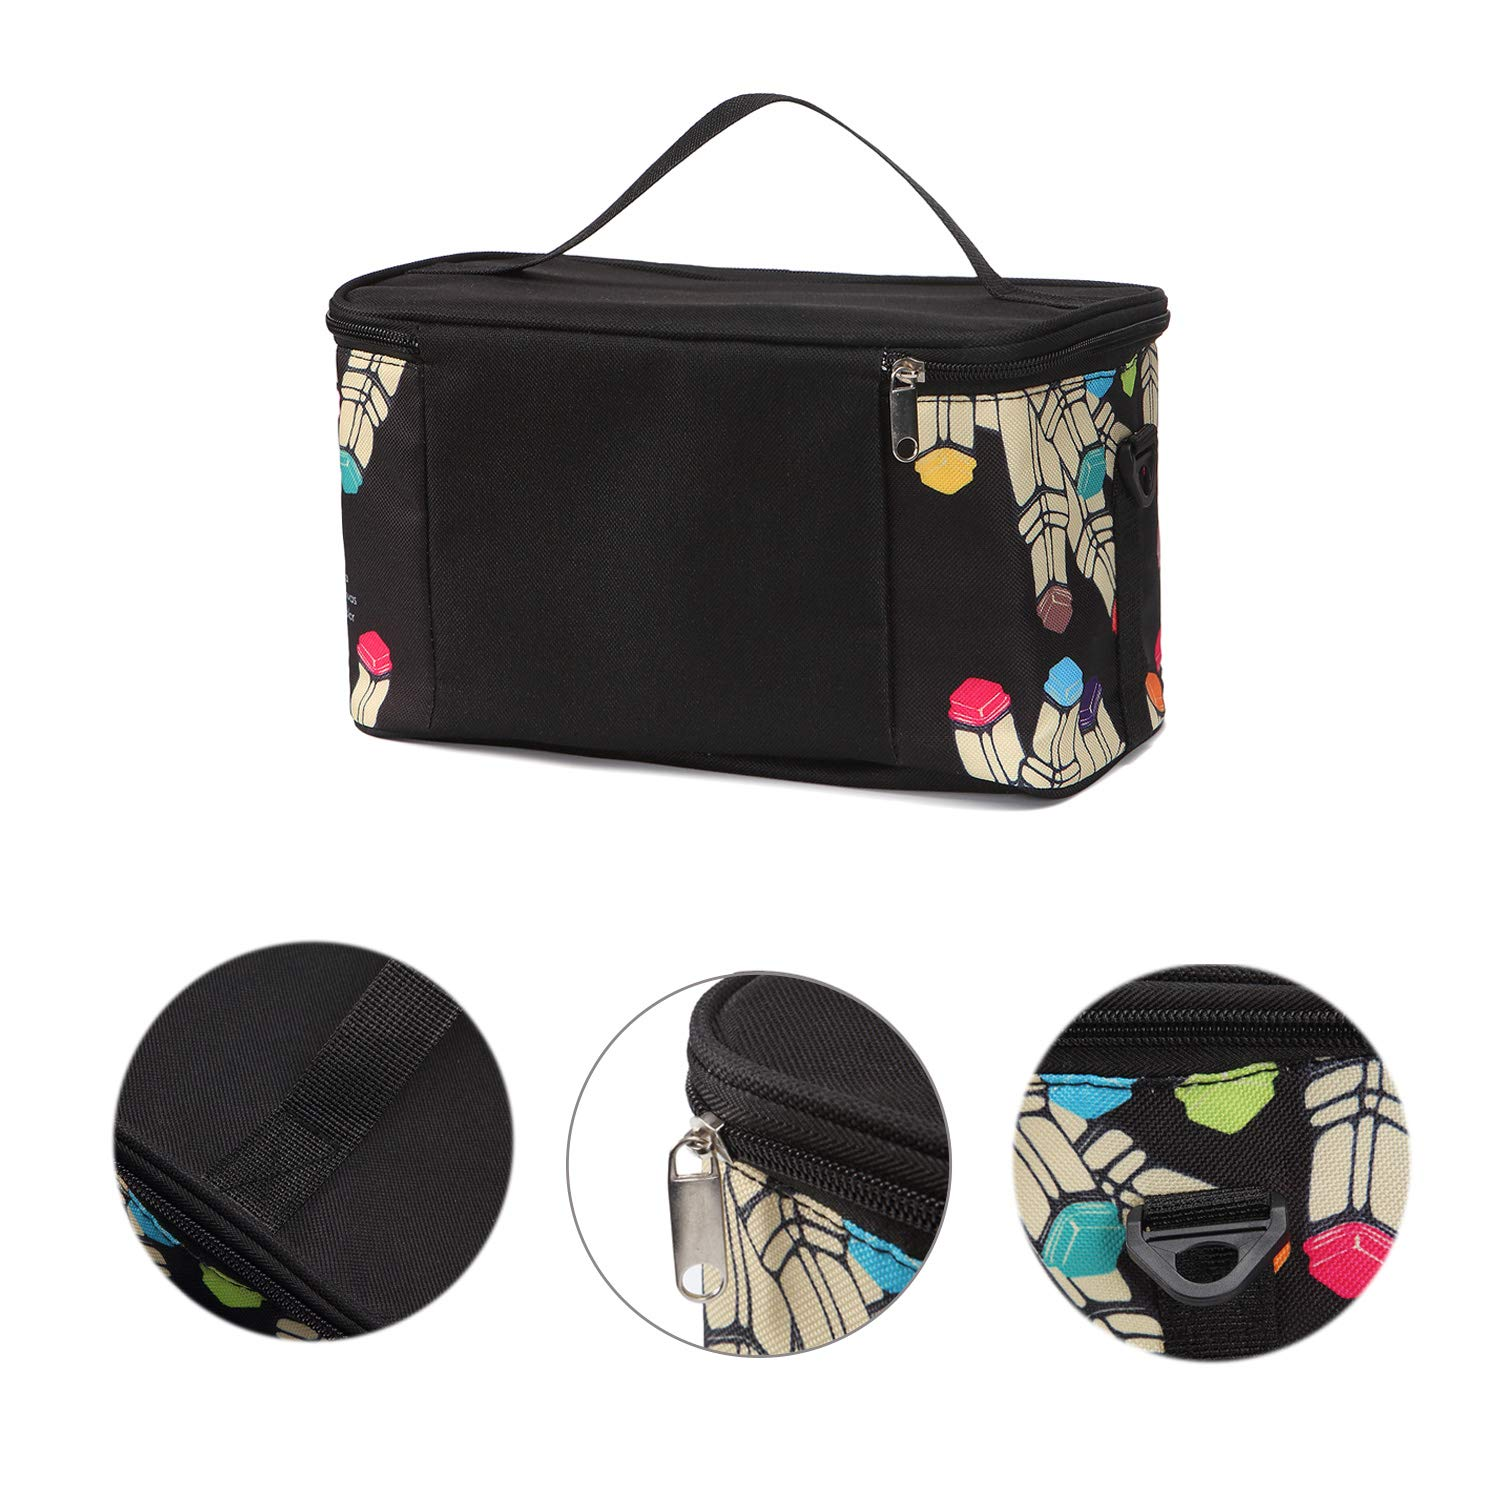 Image 2 - TOUCHFIVE New Marker Pen Case Holder Large Capacity School Bag 120 Markers Organizer Multifunctional Zipper Storage Carrying BagPencil Bags   -